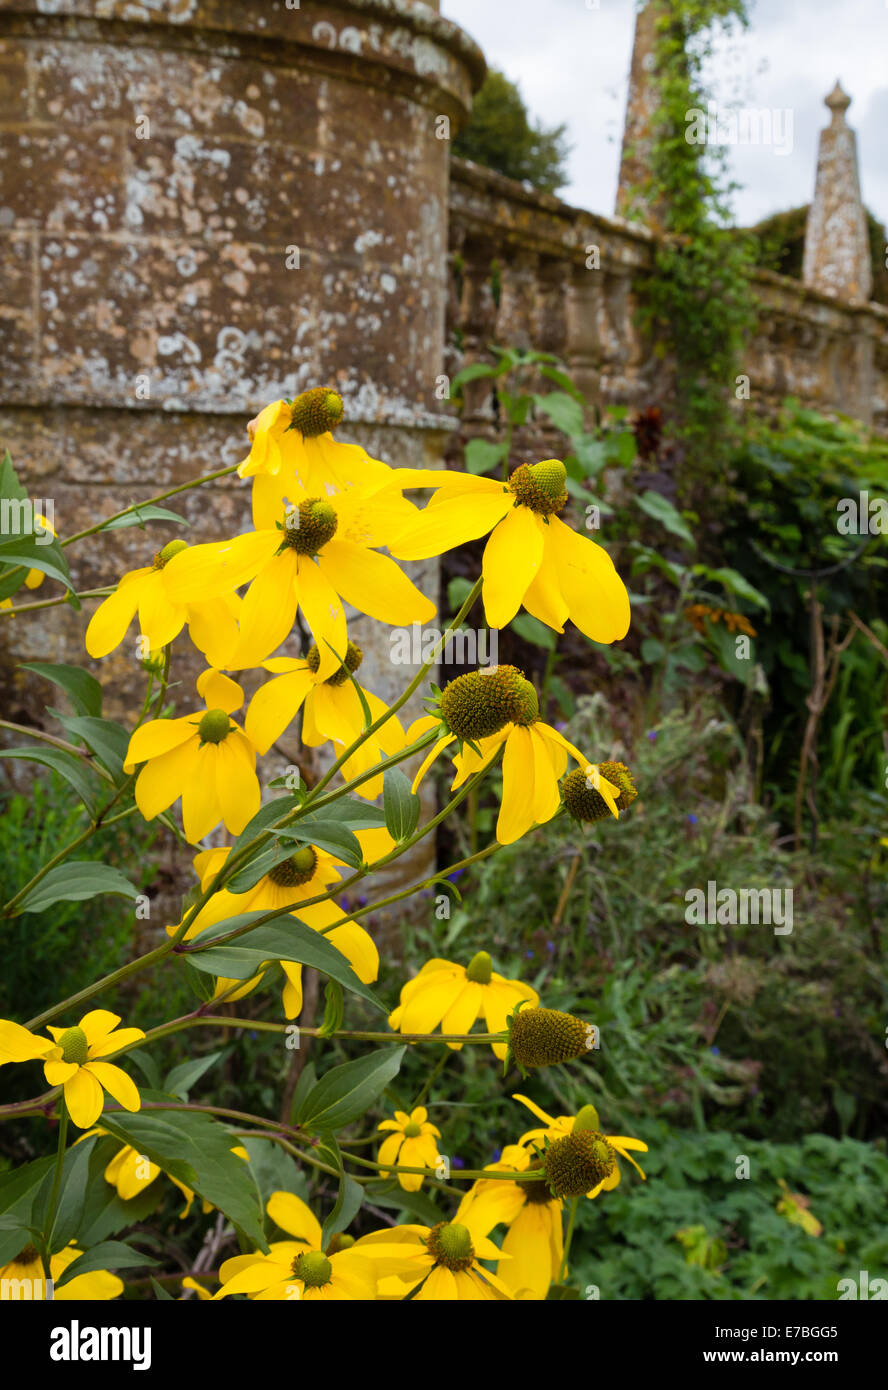 Showy yellow flowers of Rudbeckia Herbstsonne in the perennial border at Montacute House in Somerset UK - Stock Image